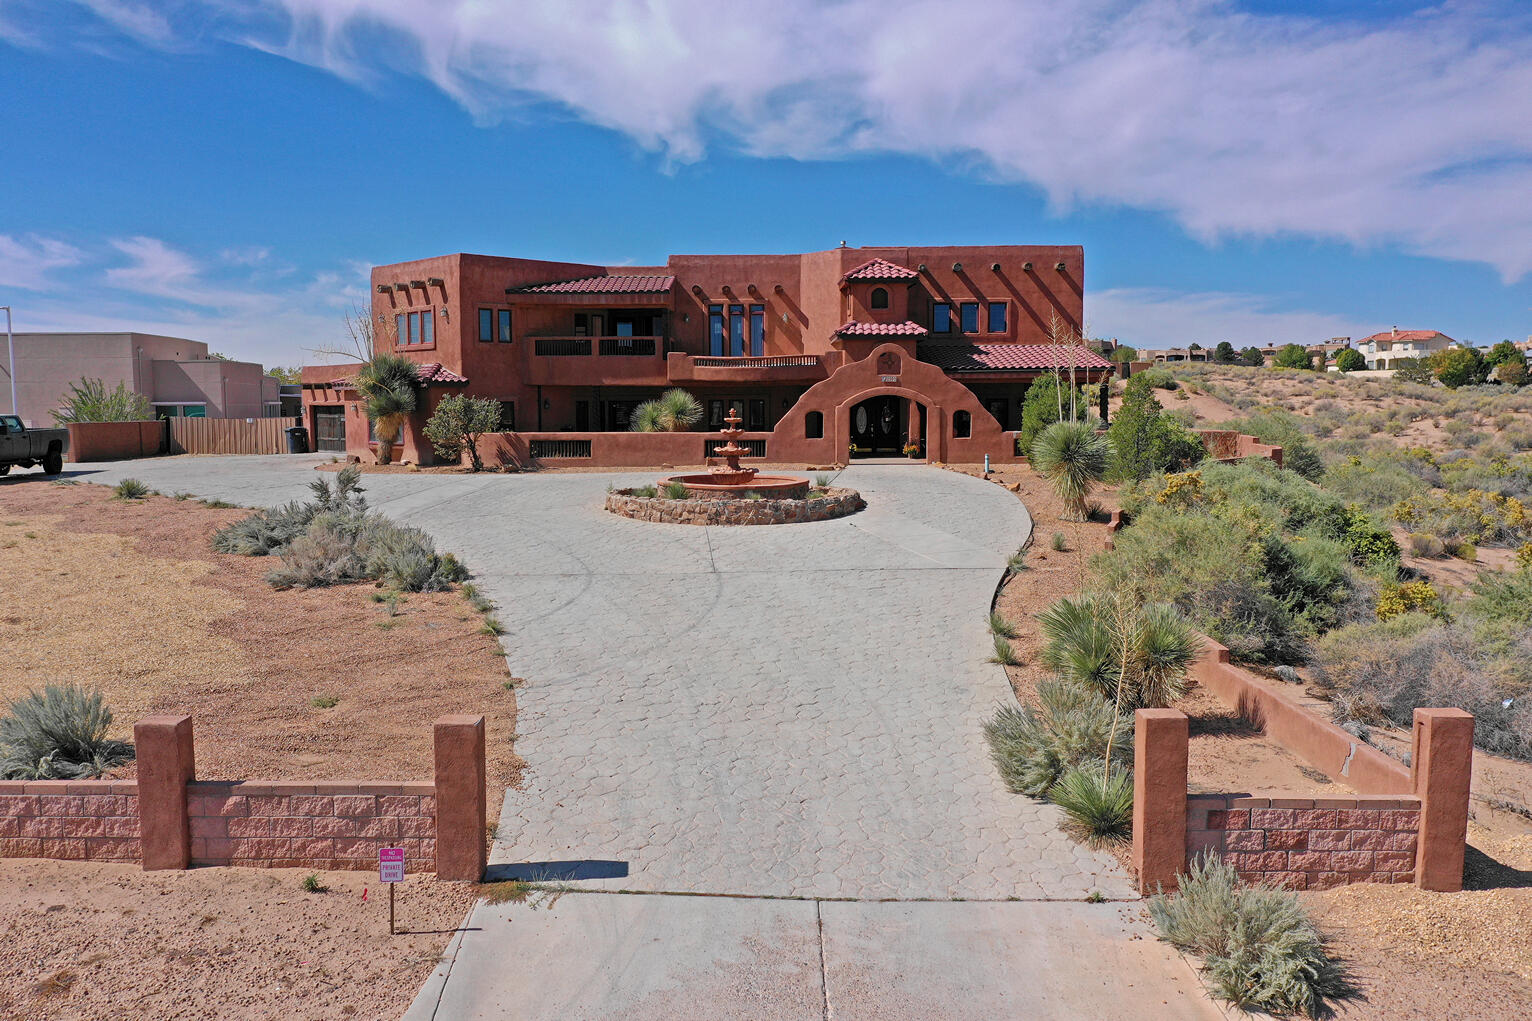 ***GREAT Home w/ Plenty of Room To Roam! Public PAVED Road Leads You To Your New Home That Sits On A Full Acre Corner Lot w/ Sandia Mtn VIEWS!  Special (SU) Zoning* Possible Bed & Breakfast Opportunity* Amenities Include 2x6 Construction, Vigas & Latillas, 2+ Master Bedrooms (1 on the Main Floor), Home Theatre, Game Room, Multiple Custom Fireplaces & So Much More!*  Awesome Outdoor Entertainment Spaces  Include Covered Portals, Waterfall, An Ingound Gunite Pool, Hot Tub, KIVA FP And Even An Outdoor Kitchen* Call For A Private Showing Today!